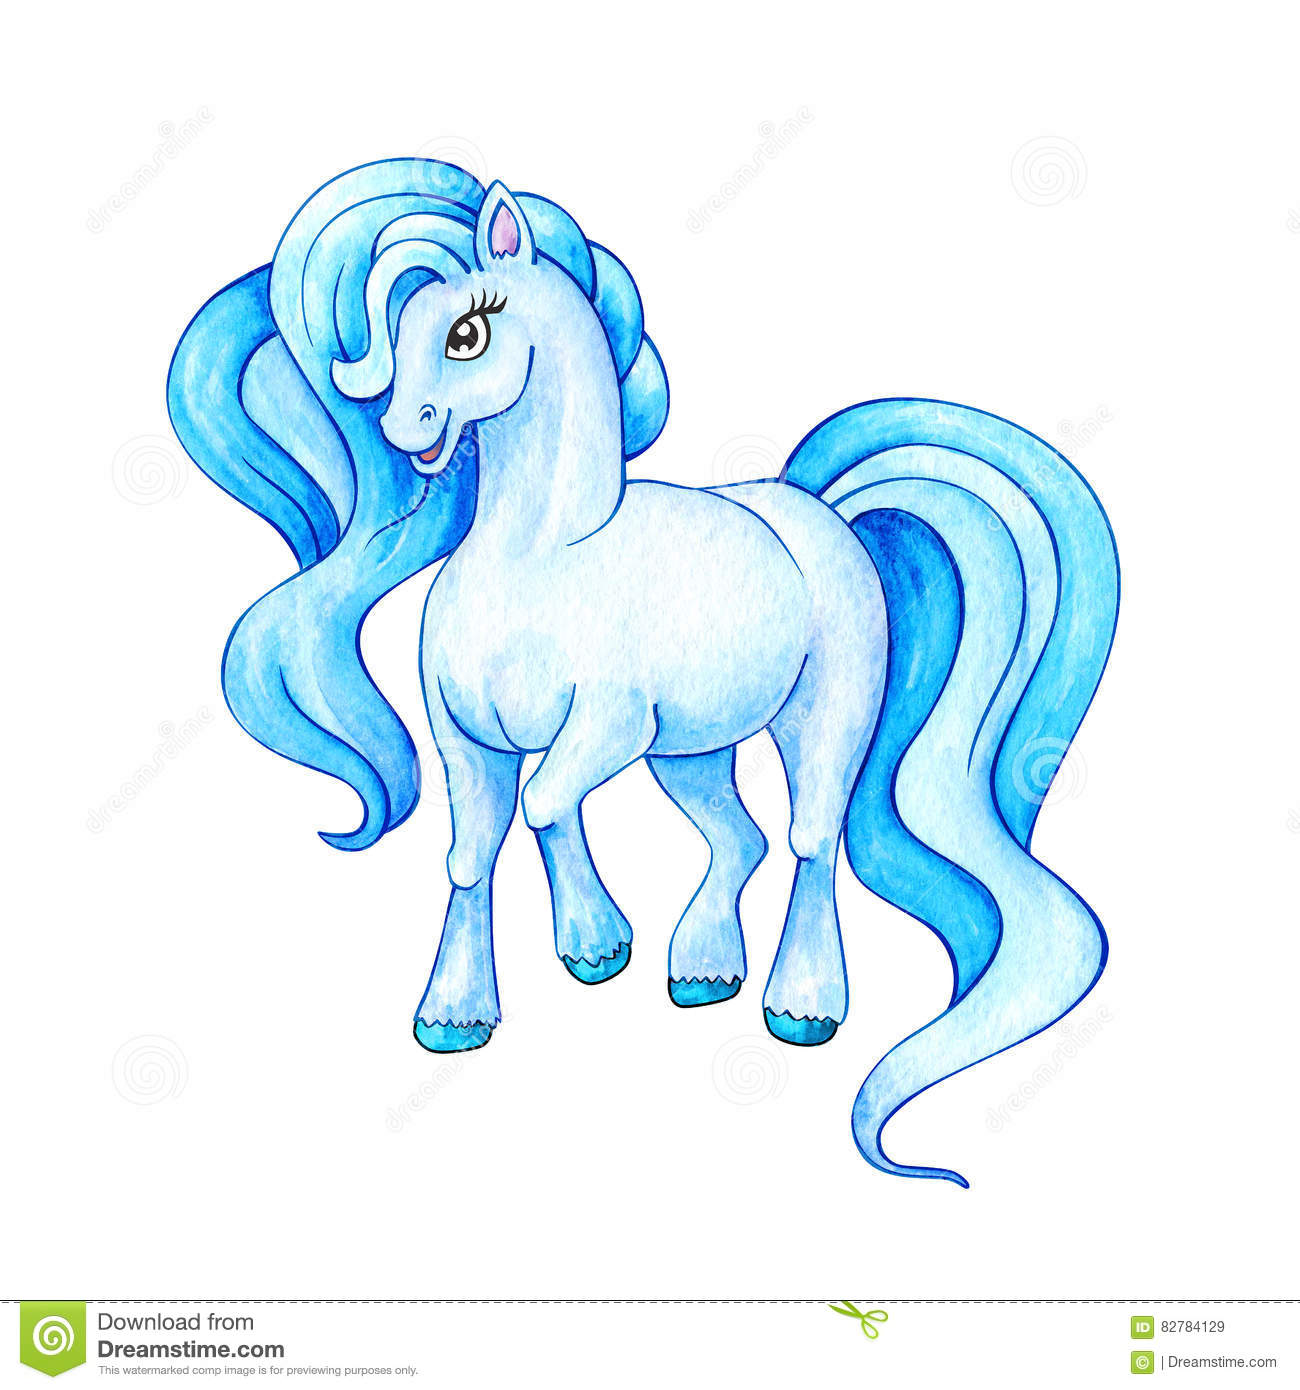 Funny Azure Pony Little Horse Watercolor Illustration Stock Illustration Illustration Of Tale Watercolor 82784129